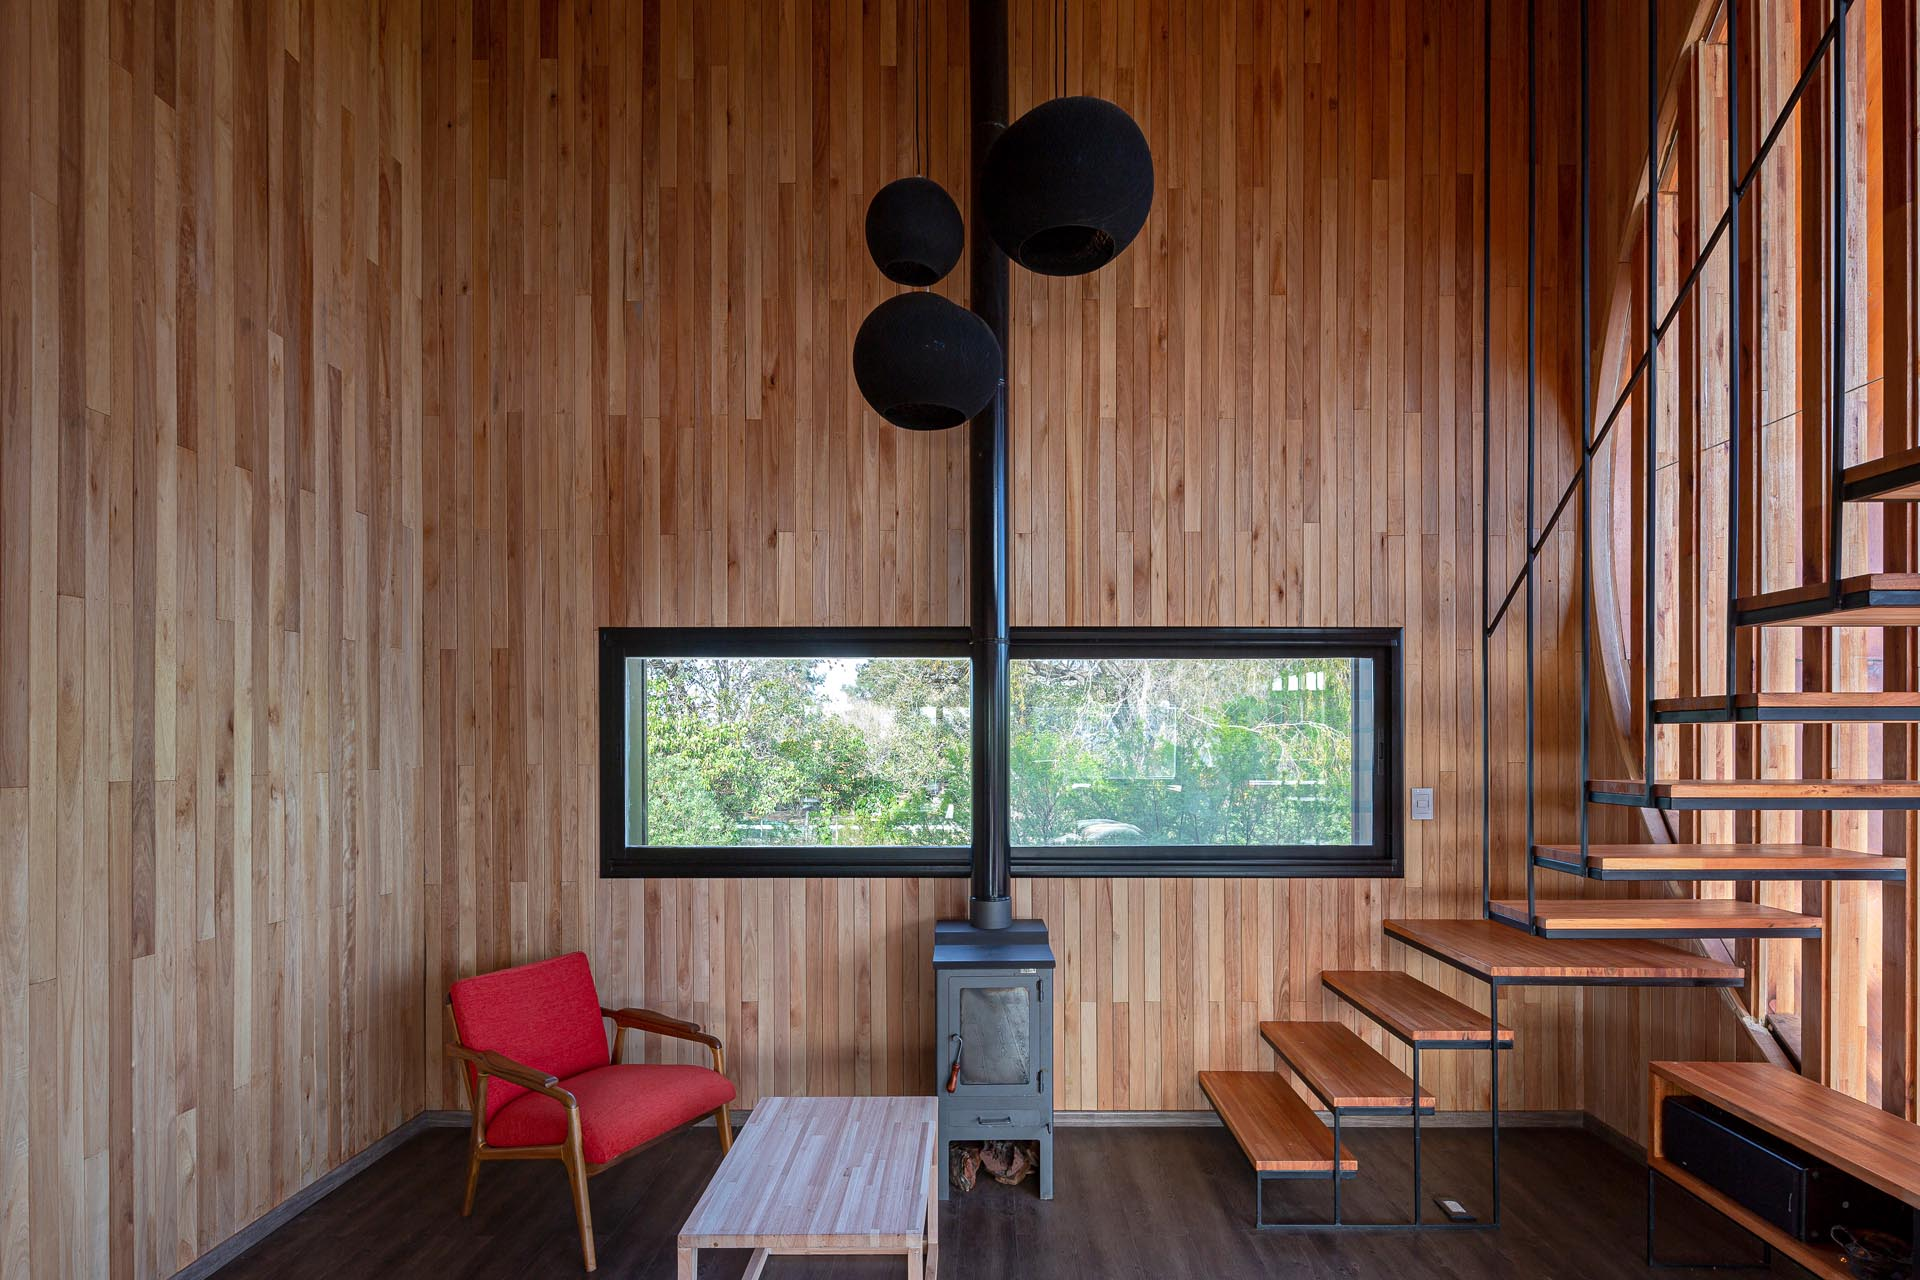 A small and modern house with a wood-lined interior, and a black fireplace that matches the window frames.